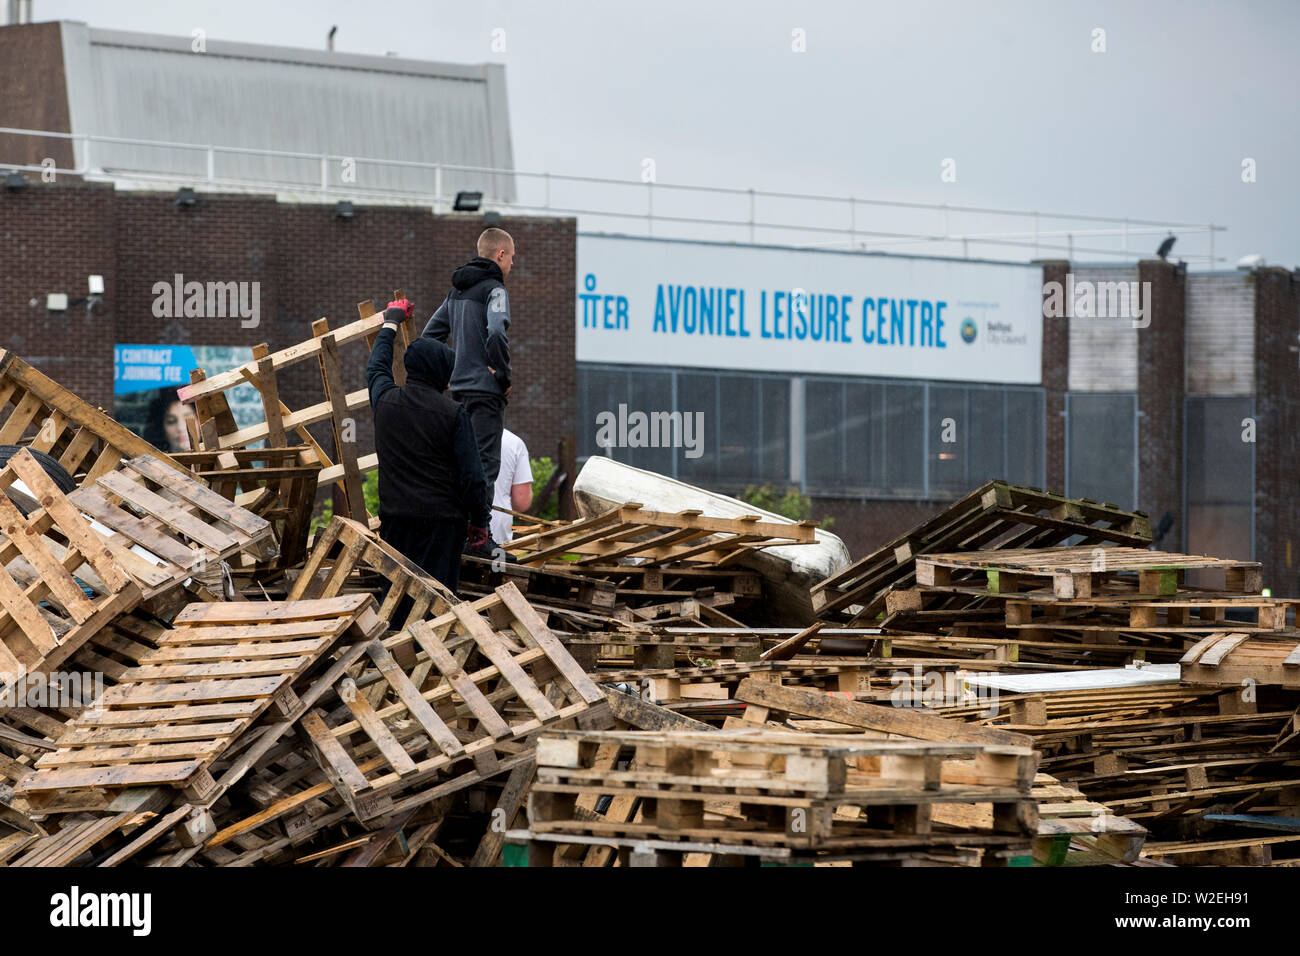 Men stand on an unlit bonfire as they begin to remove tyres and material of an July 11th night bonfire at Avoniel Leisure Centre shortly after a Belfast City Council committee voted to send contractors in to remove material. - Stock Image